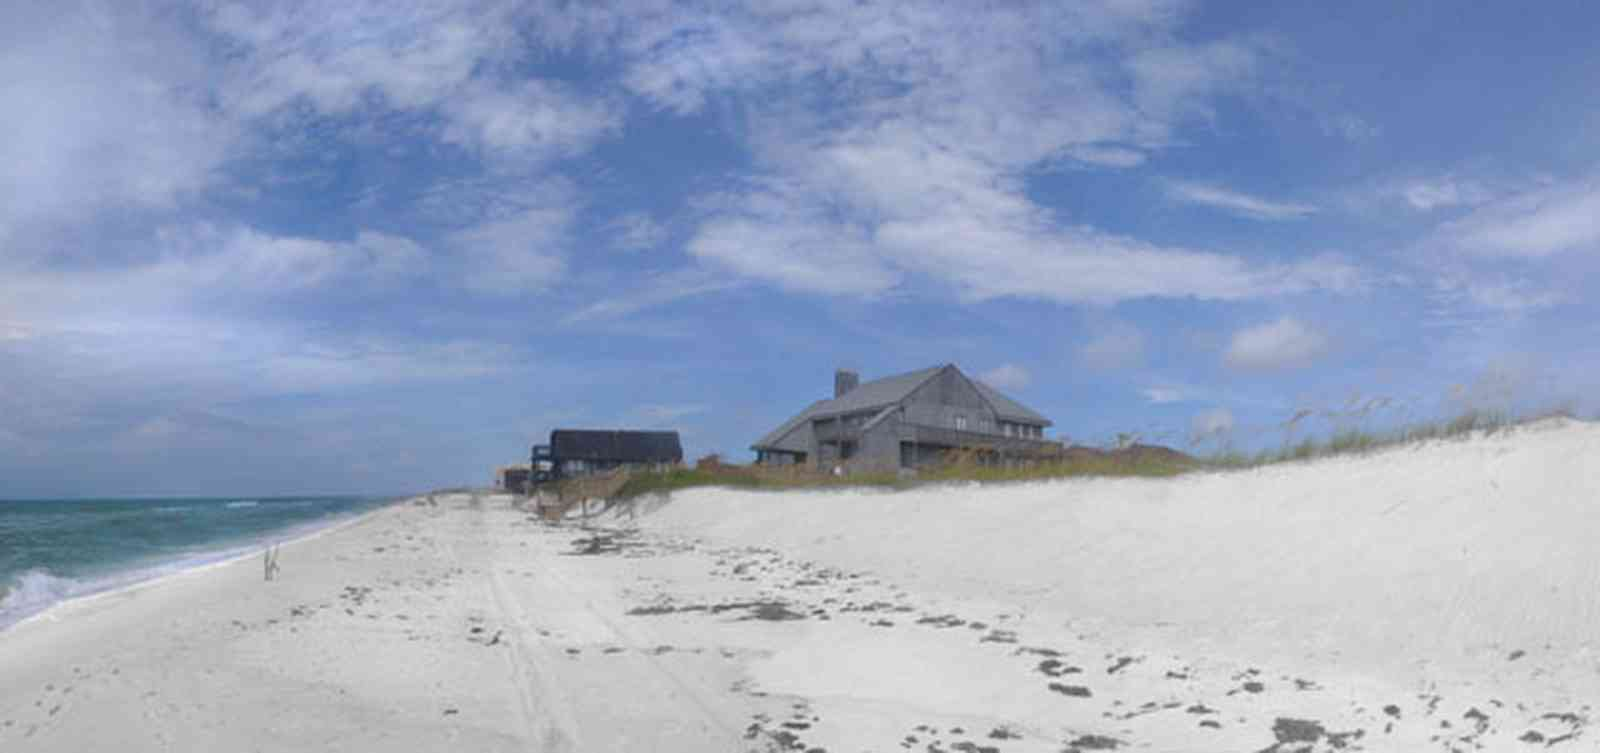 Pensacola-Beach:-Hermosa-St-Homes_02.jpg:  dunes, sand, quartz crystal sand, sea oats, subdivision